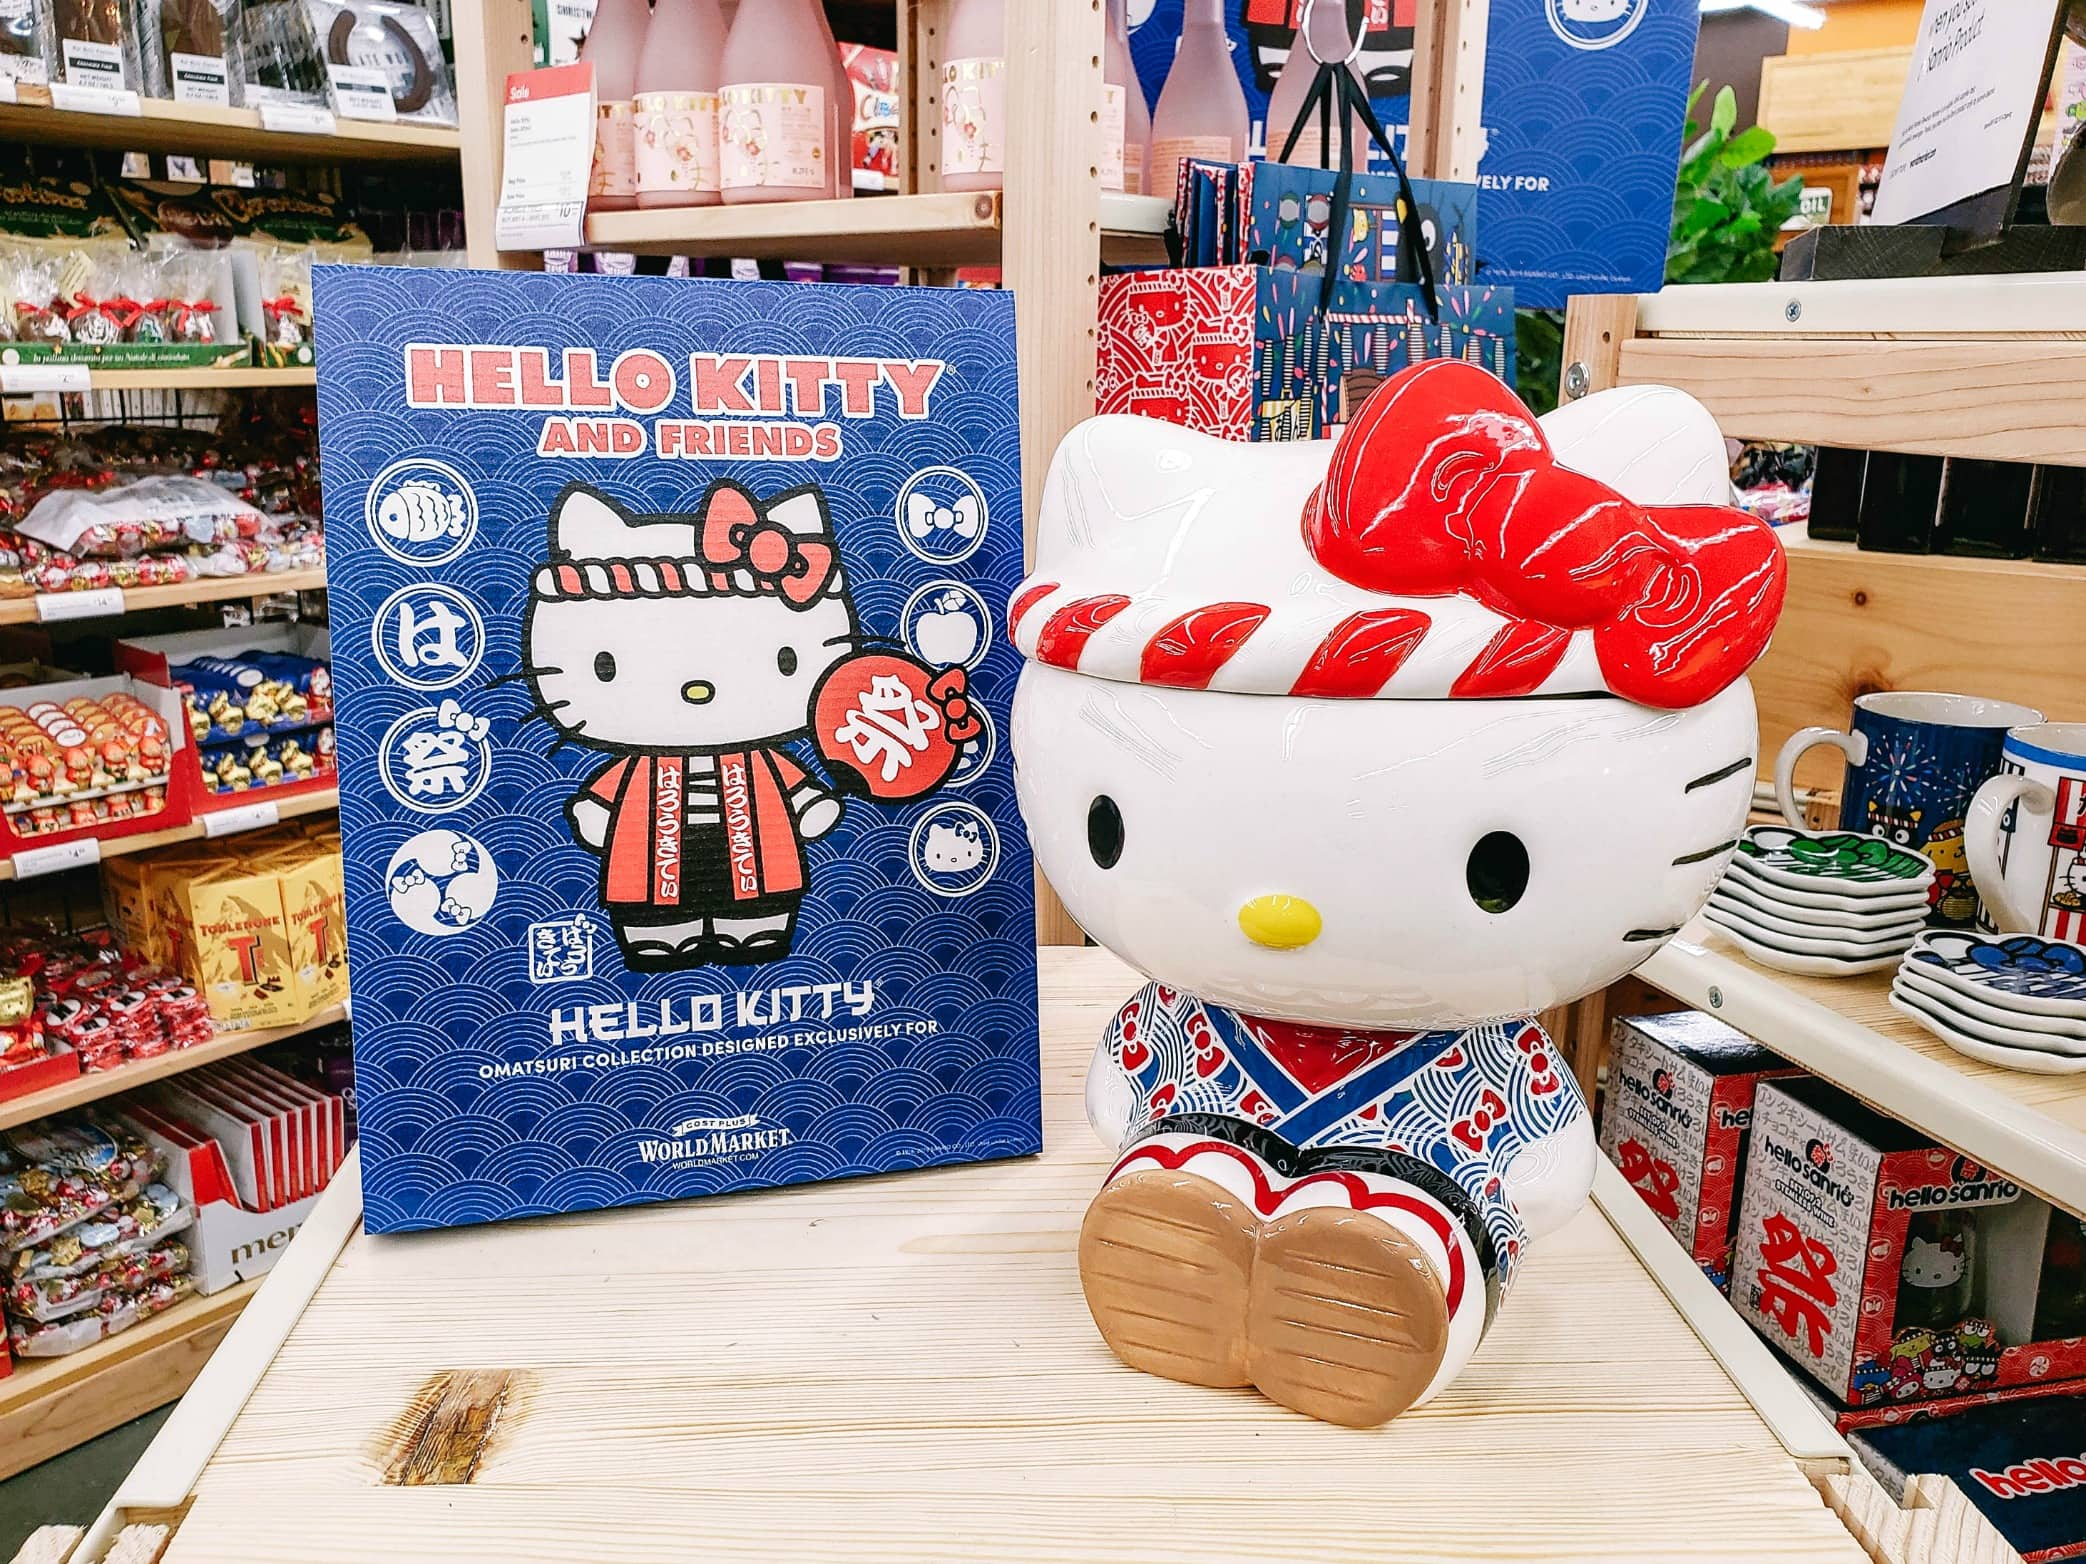 Hello Kitty sign and cookie jar